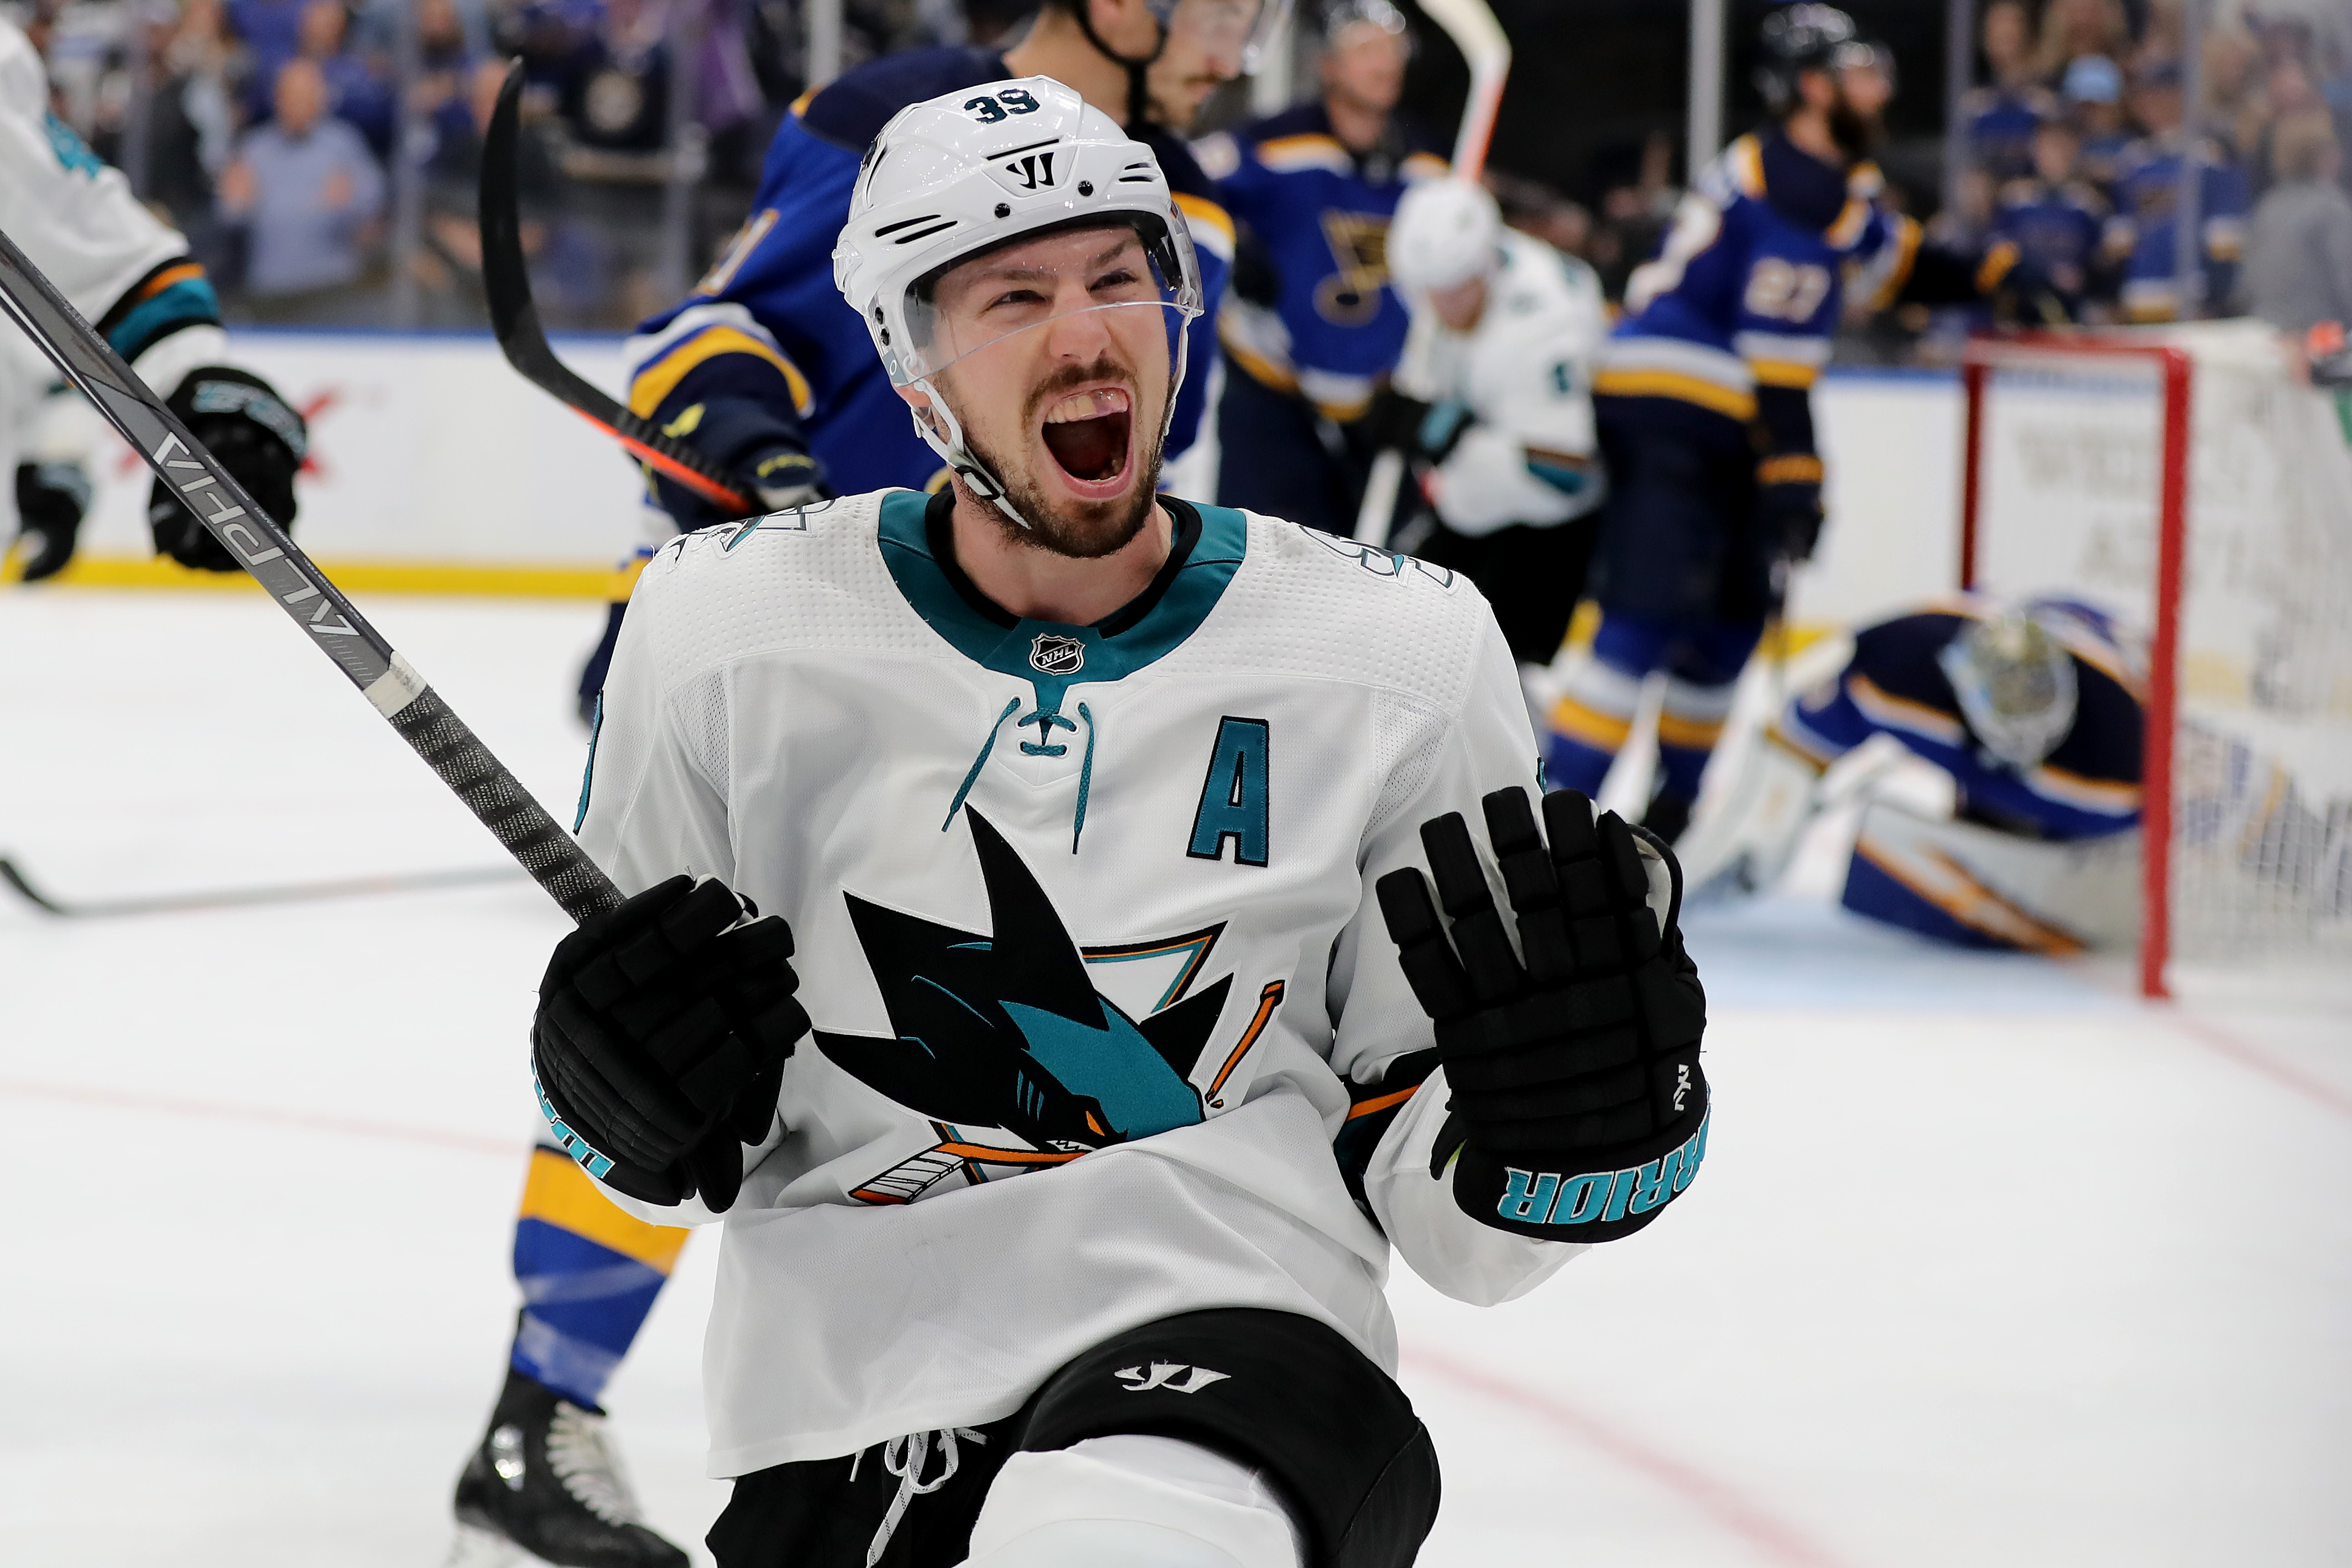 Logan Couture of the San Jose Sharks celebrates after scoring a goal on Jordan Binnington of the St. Louis Blues during the third period in Game 3 of the Western Conference Final during the 2019 NHL Stanley Cup Playoffs at Enterprise Center on May 15, 201